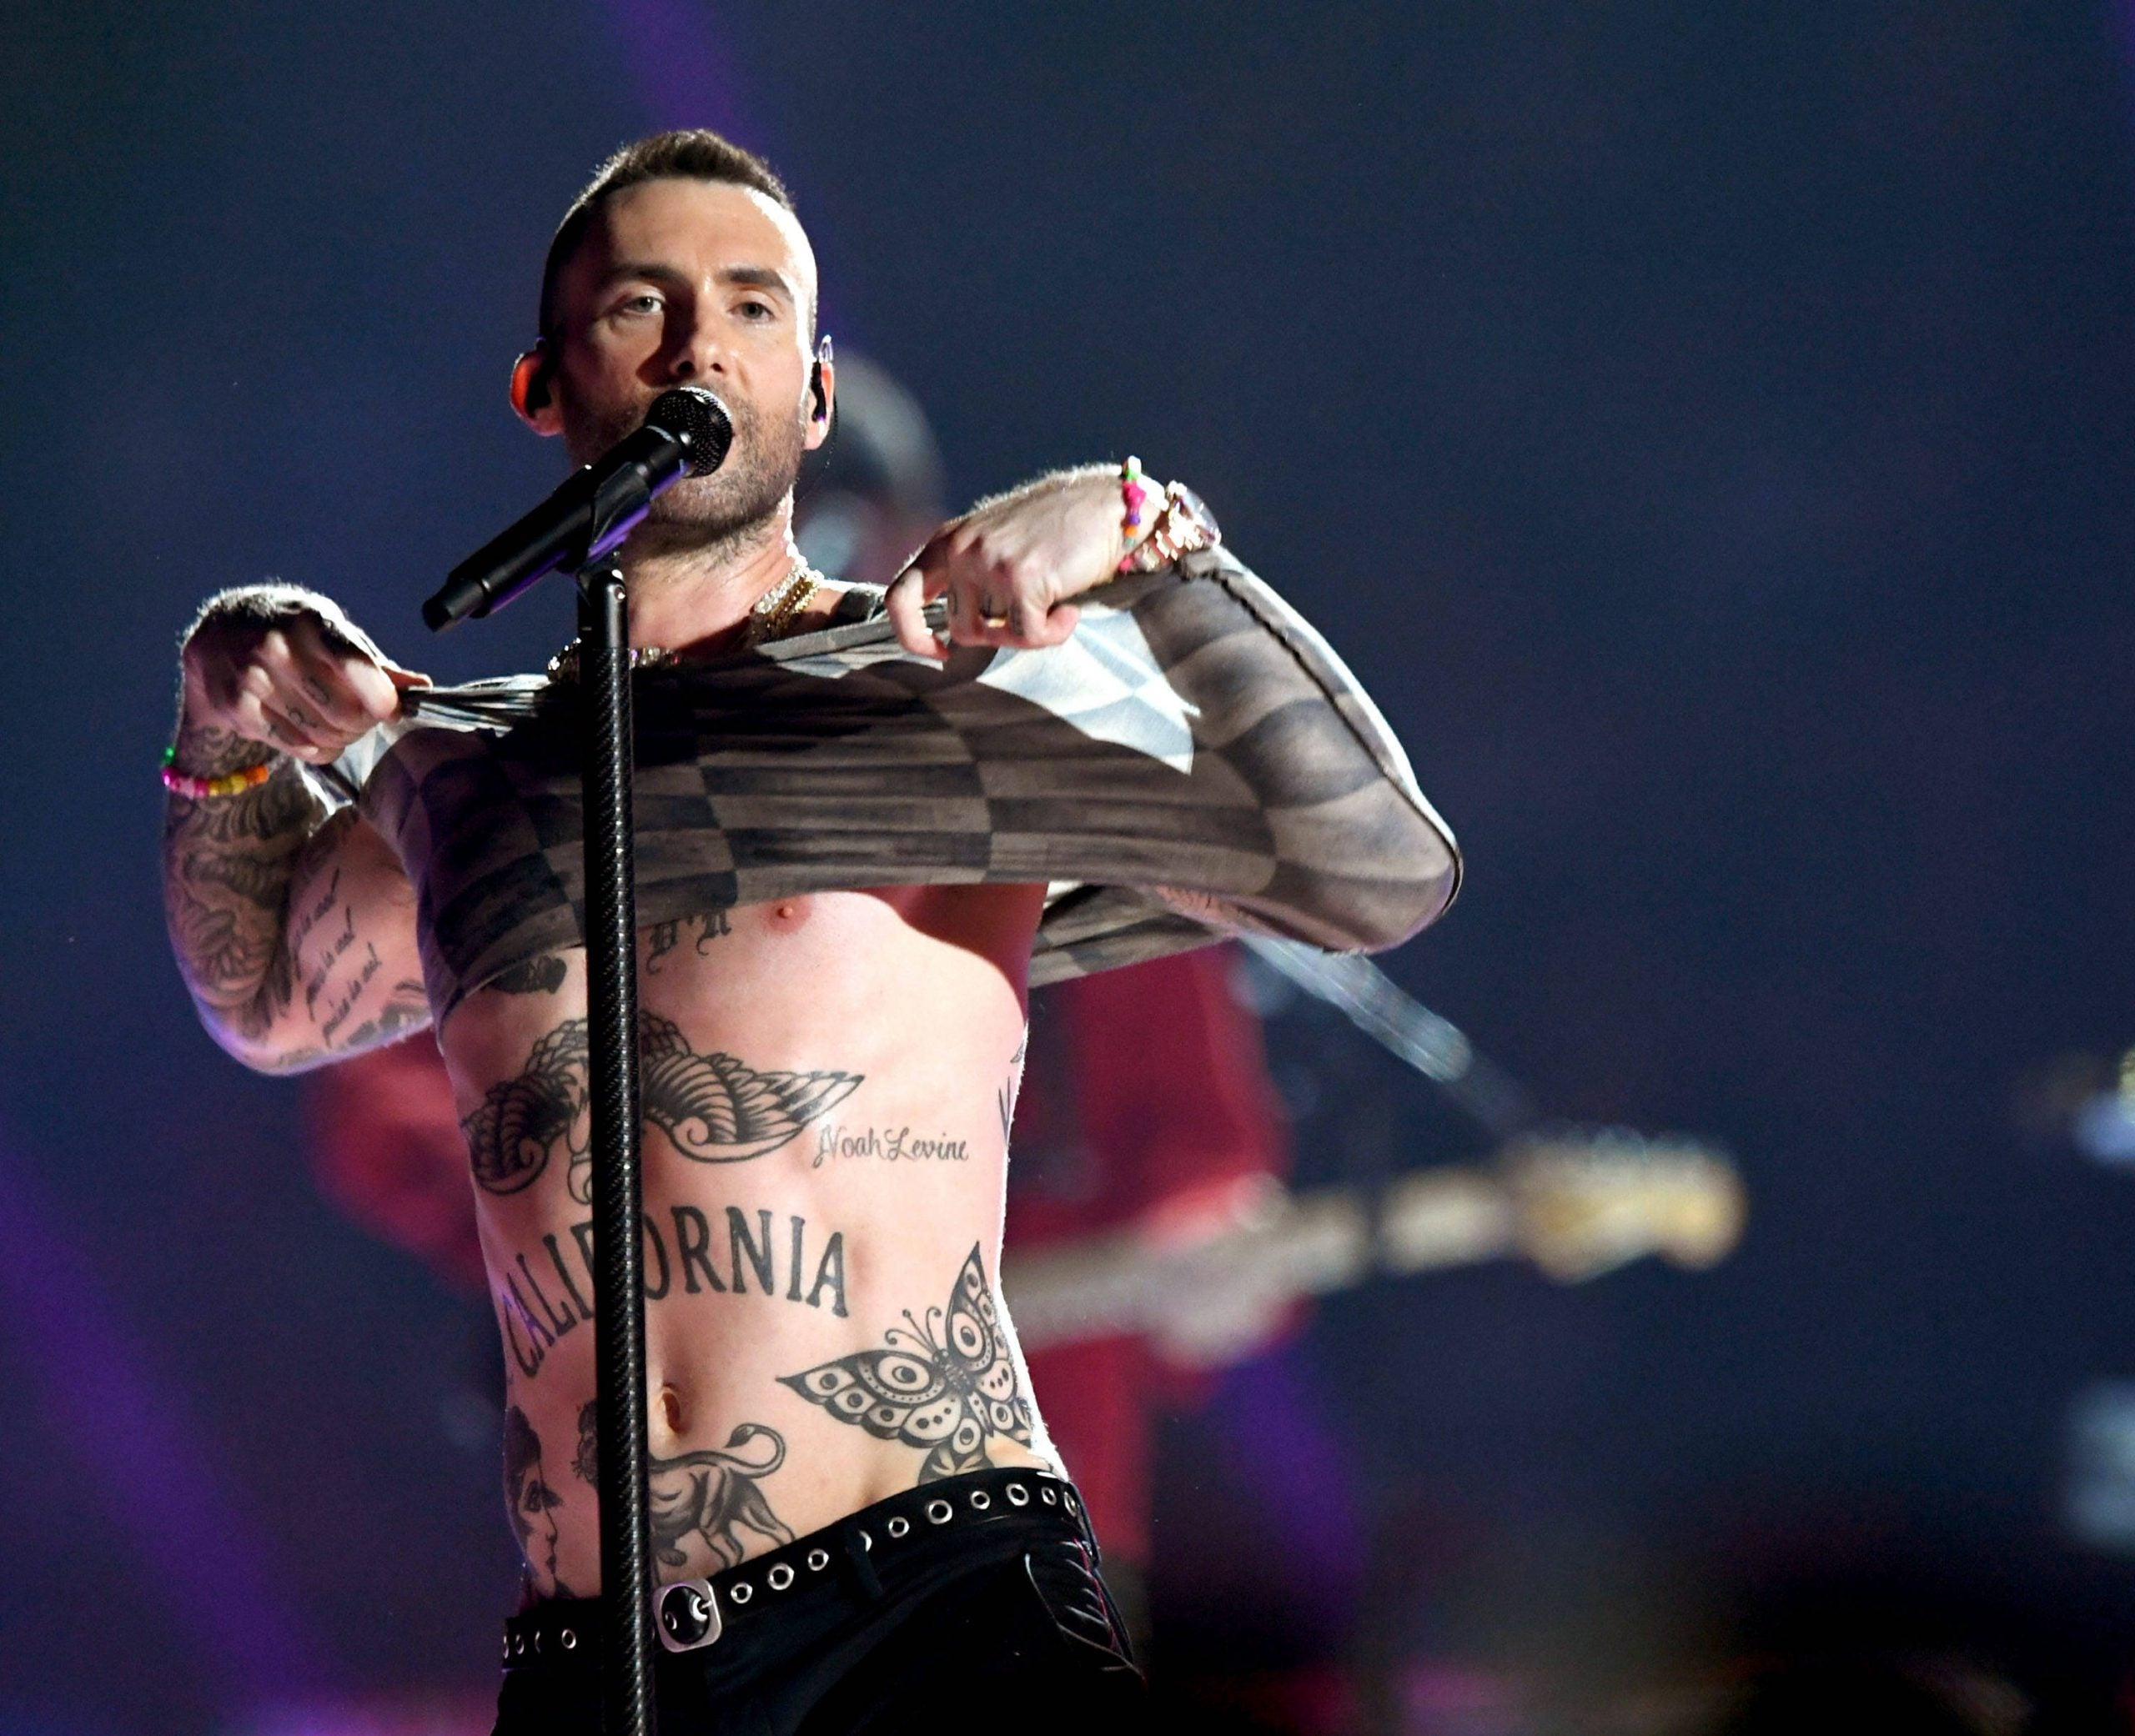 Forget fireworks, sheets of flame and Adam Levine's nipples, I'll stick to half-time British-style